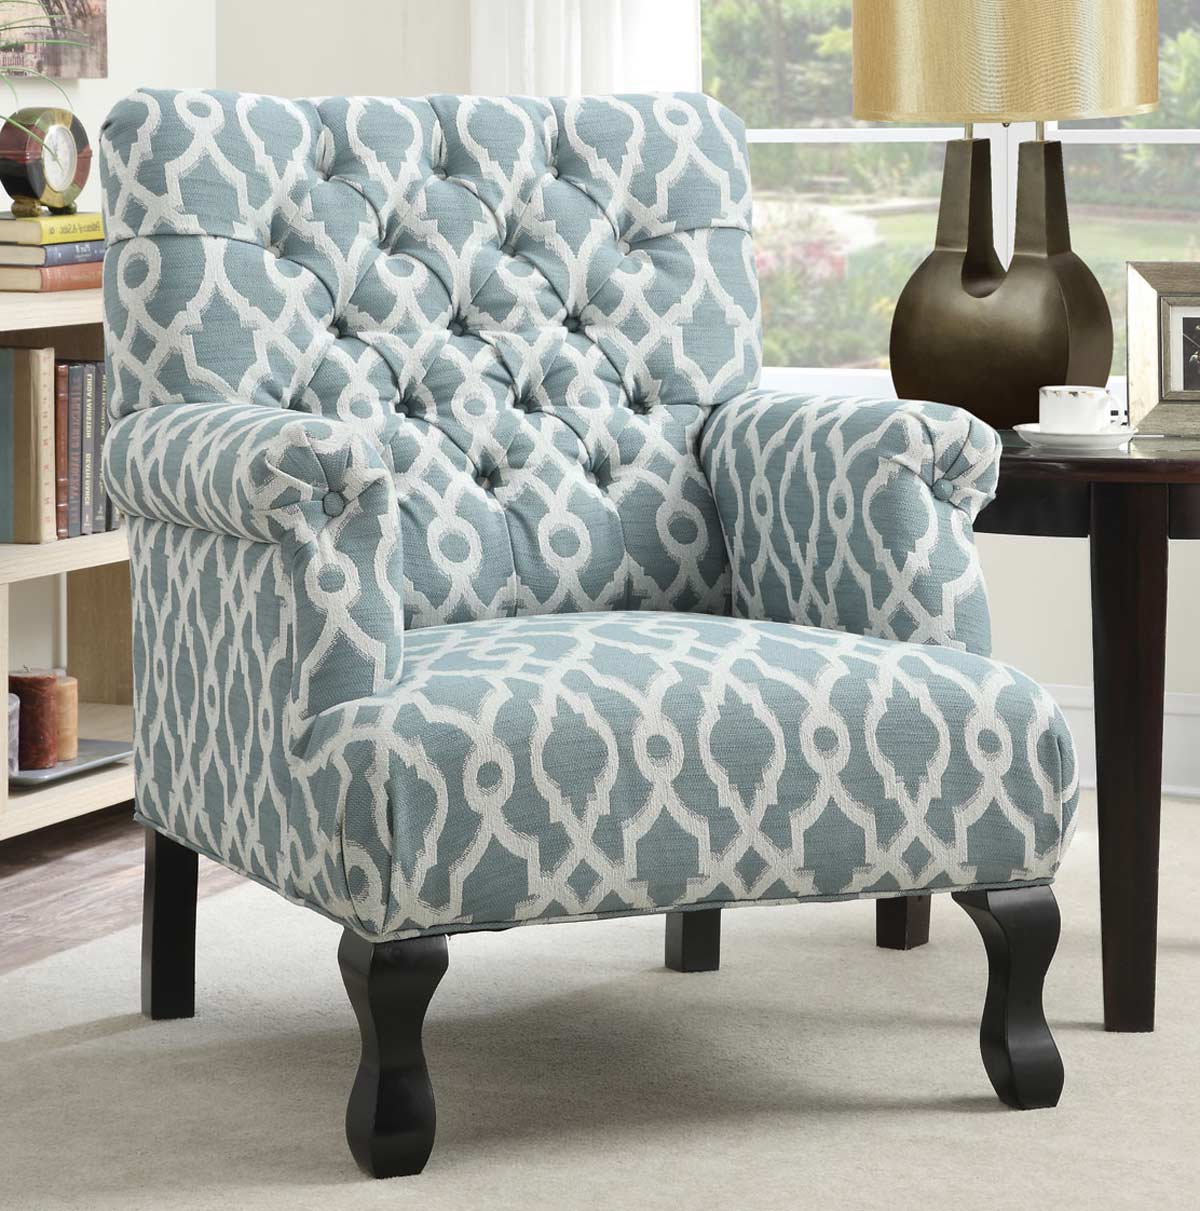 Coaster 902406 Accent Chair - Blue